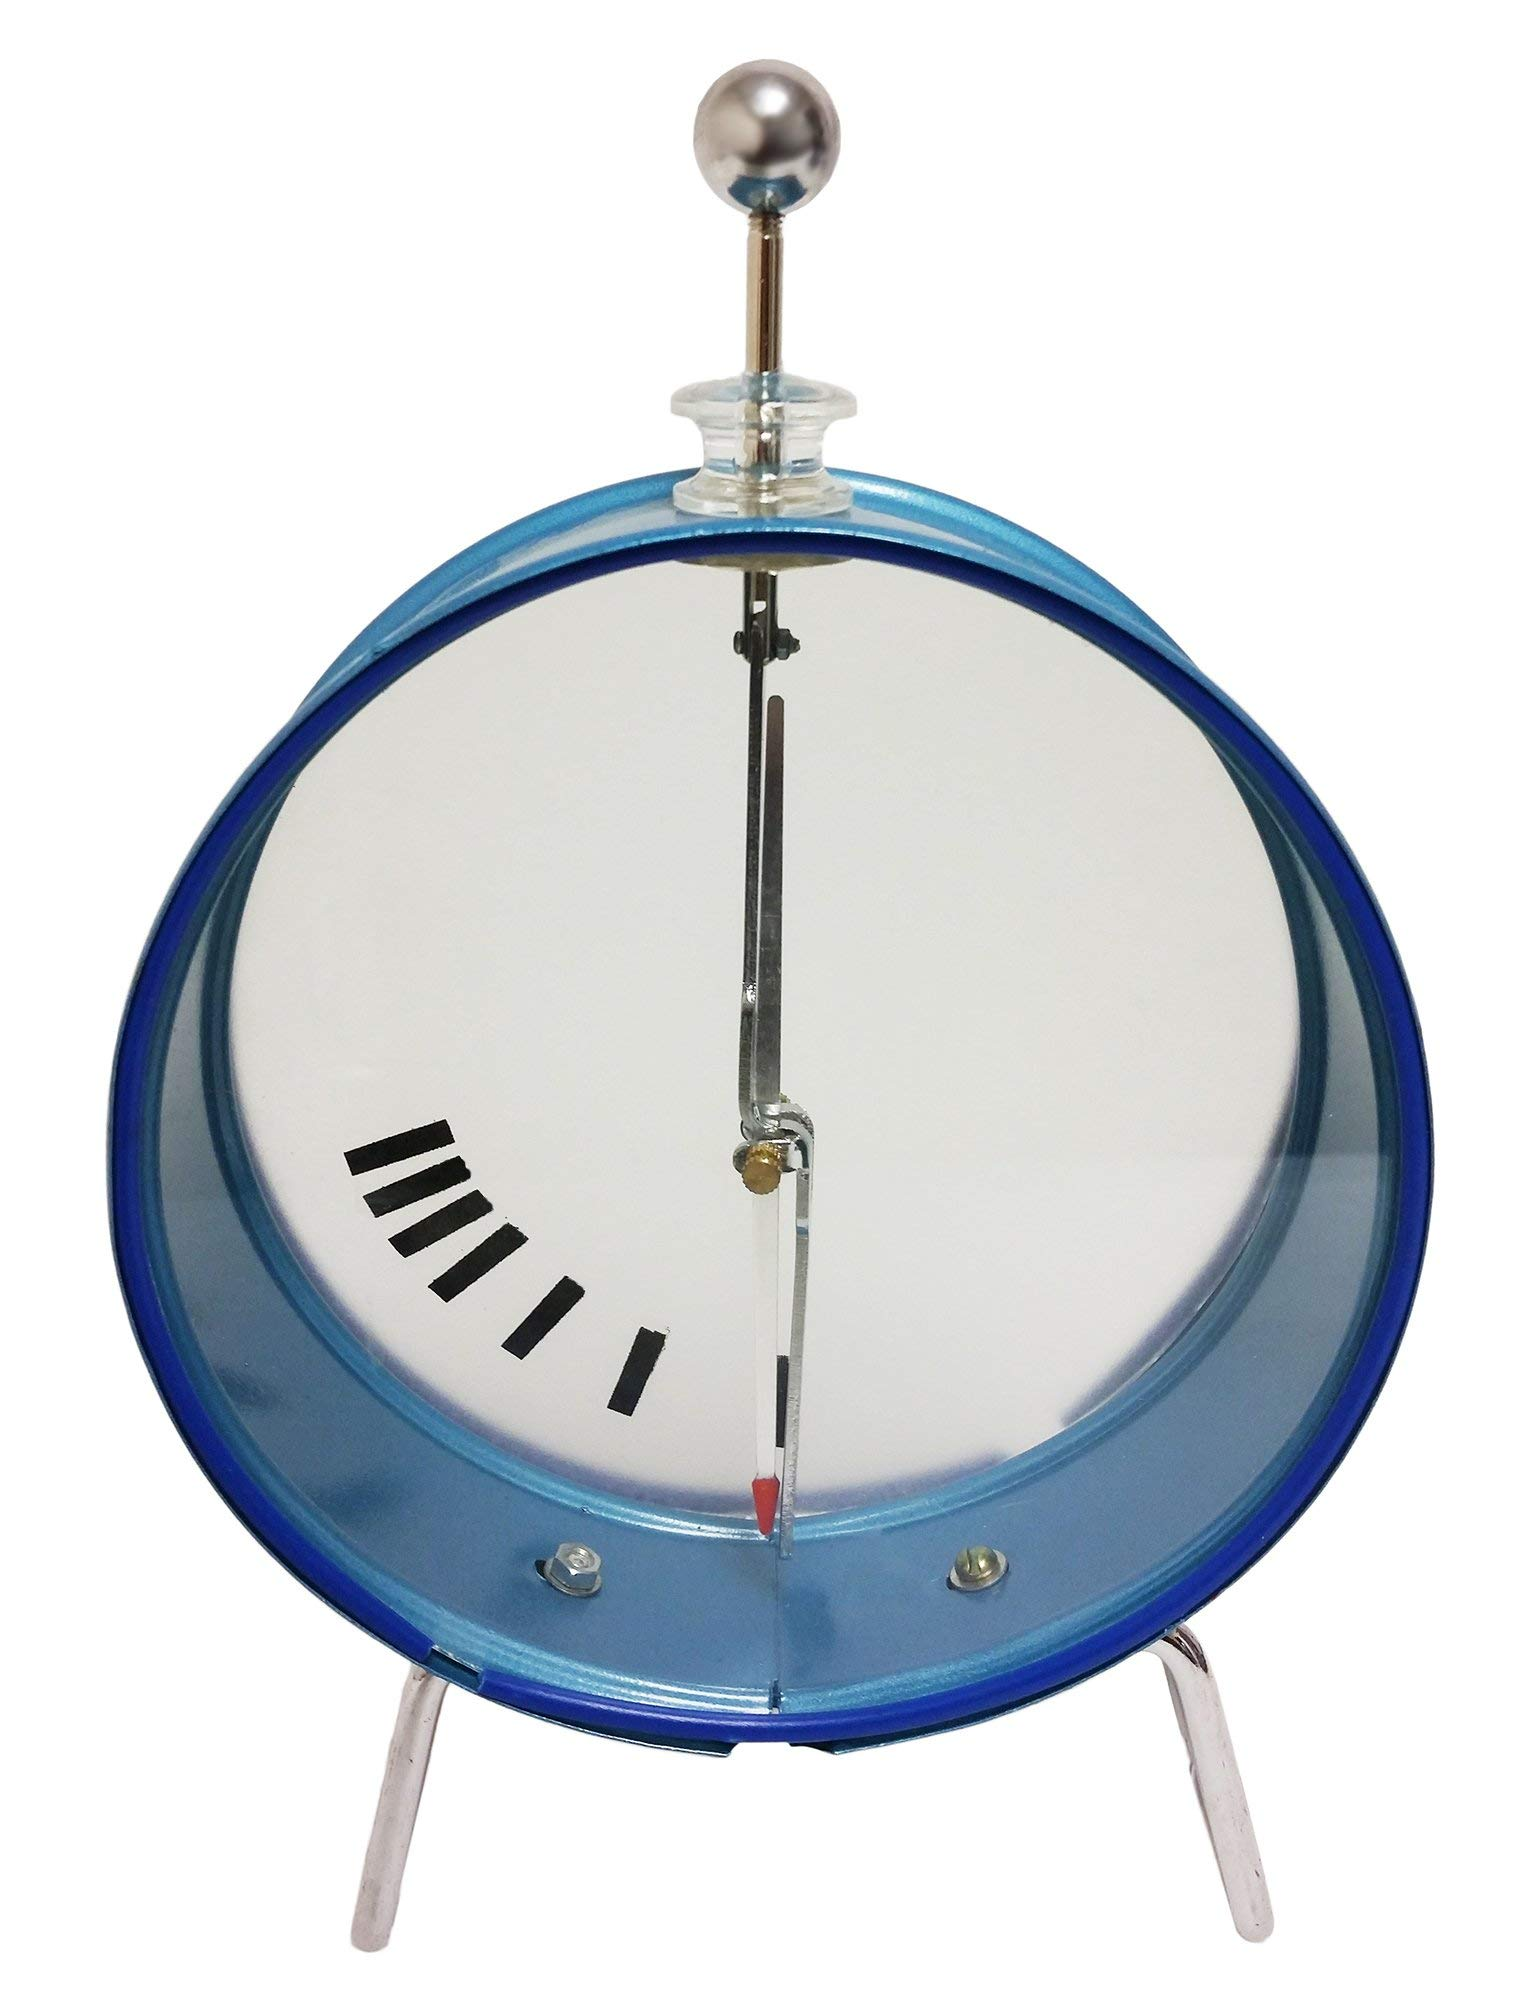 GSC International 4-50190-2 Electroscope with Round Case, Free-Spinning Pointer, and Indicator Gauge (Case of 2)